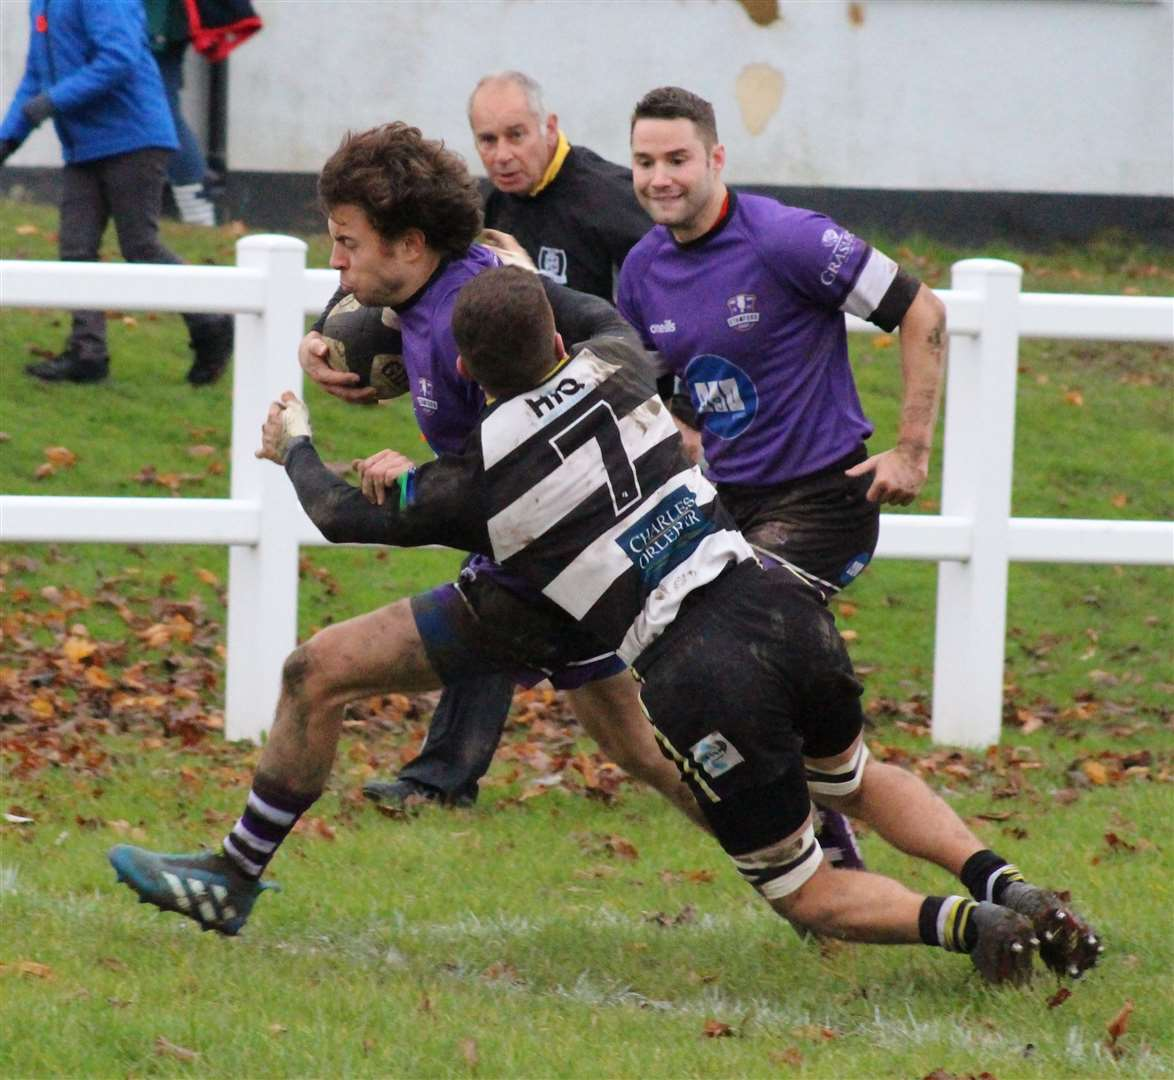 Action from Stamford's victory at Rushden & Higham on Saturday. Photo: Darren Dolby (21889416)